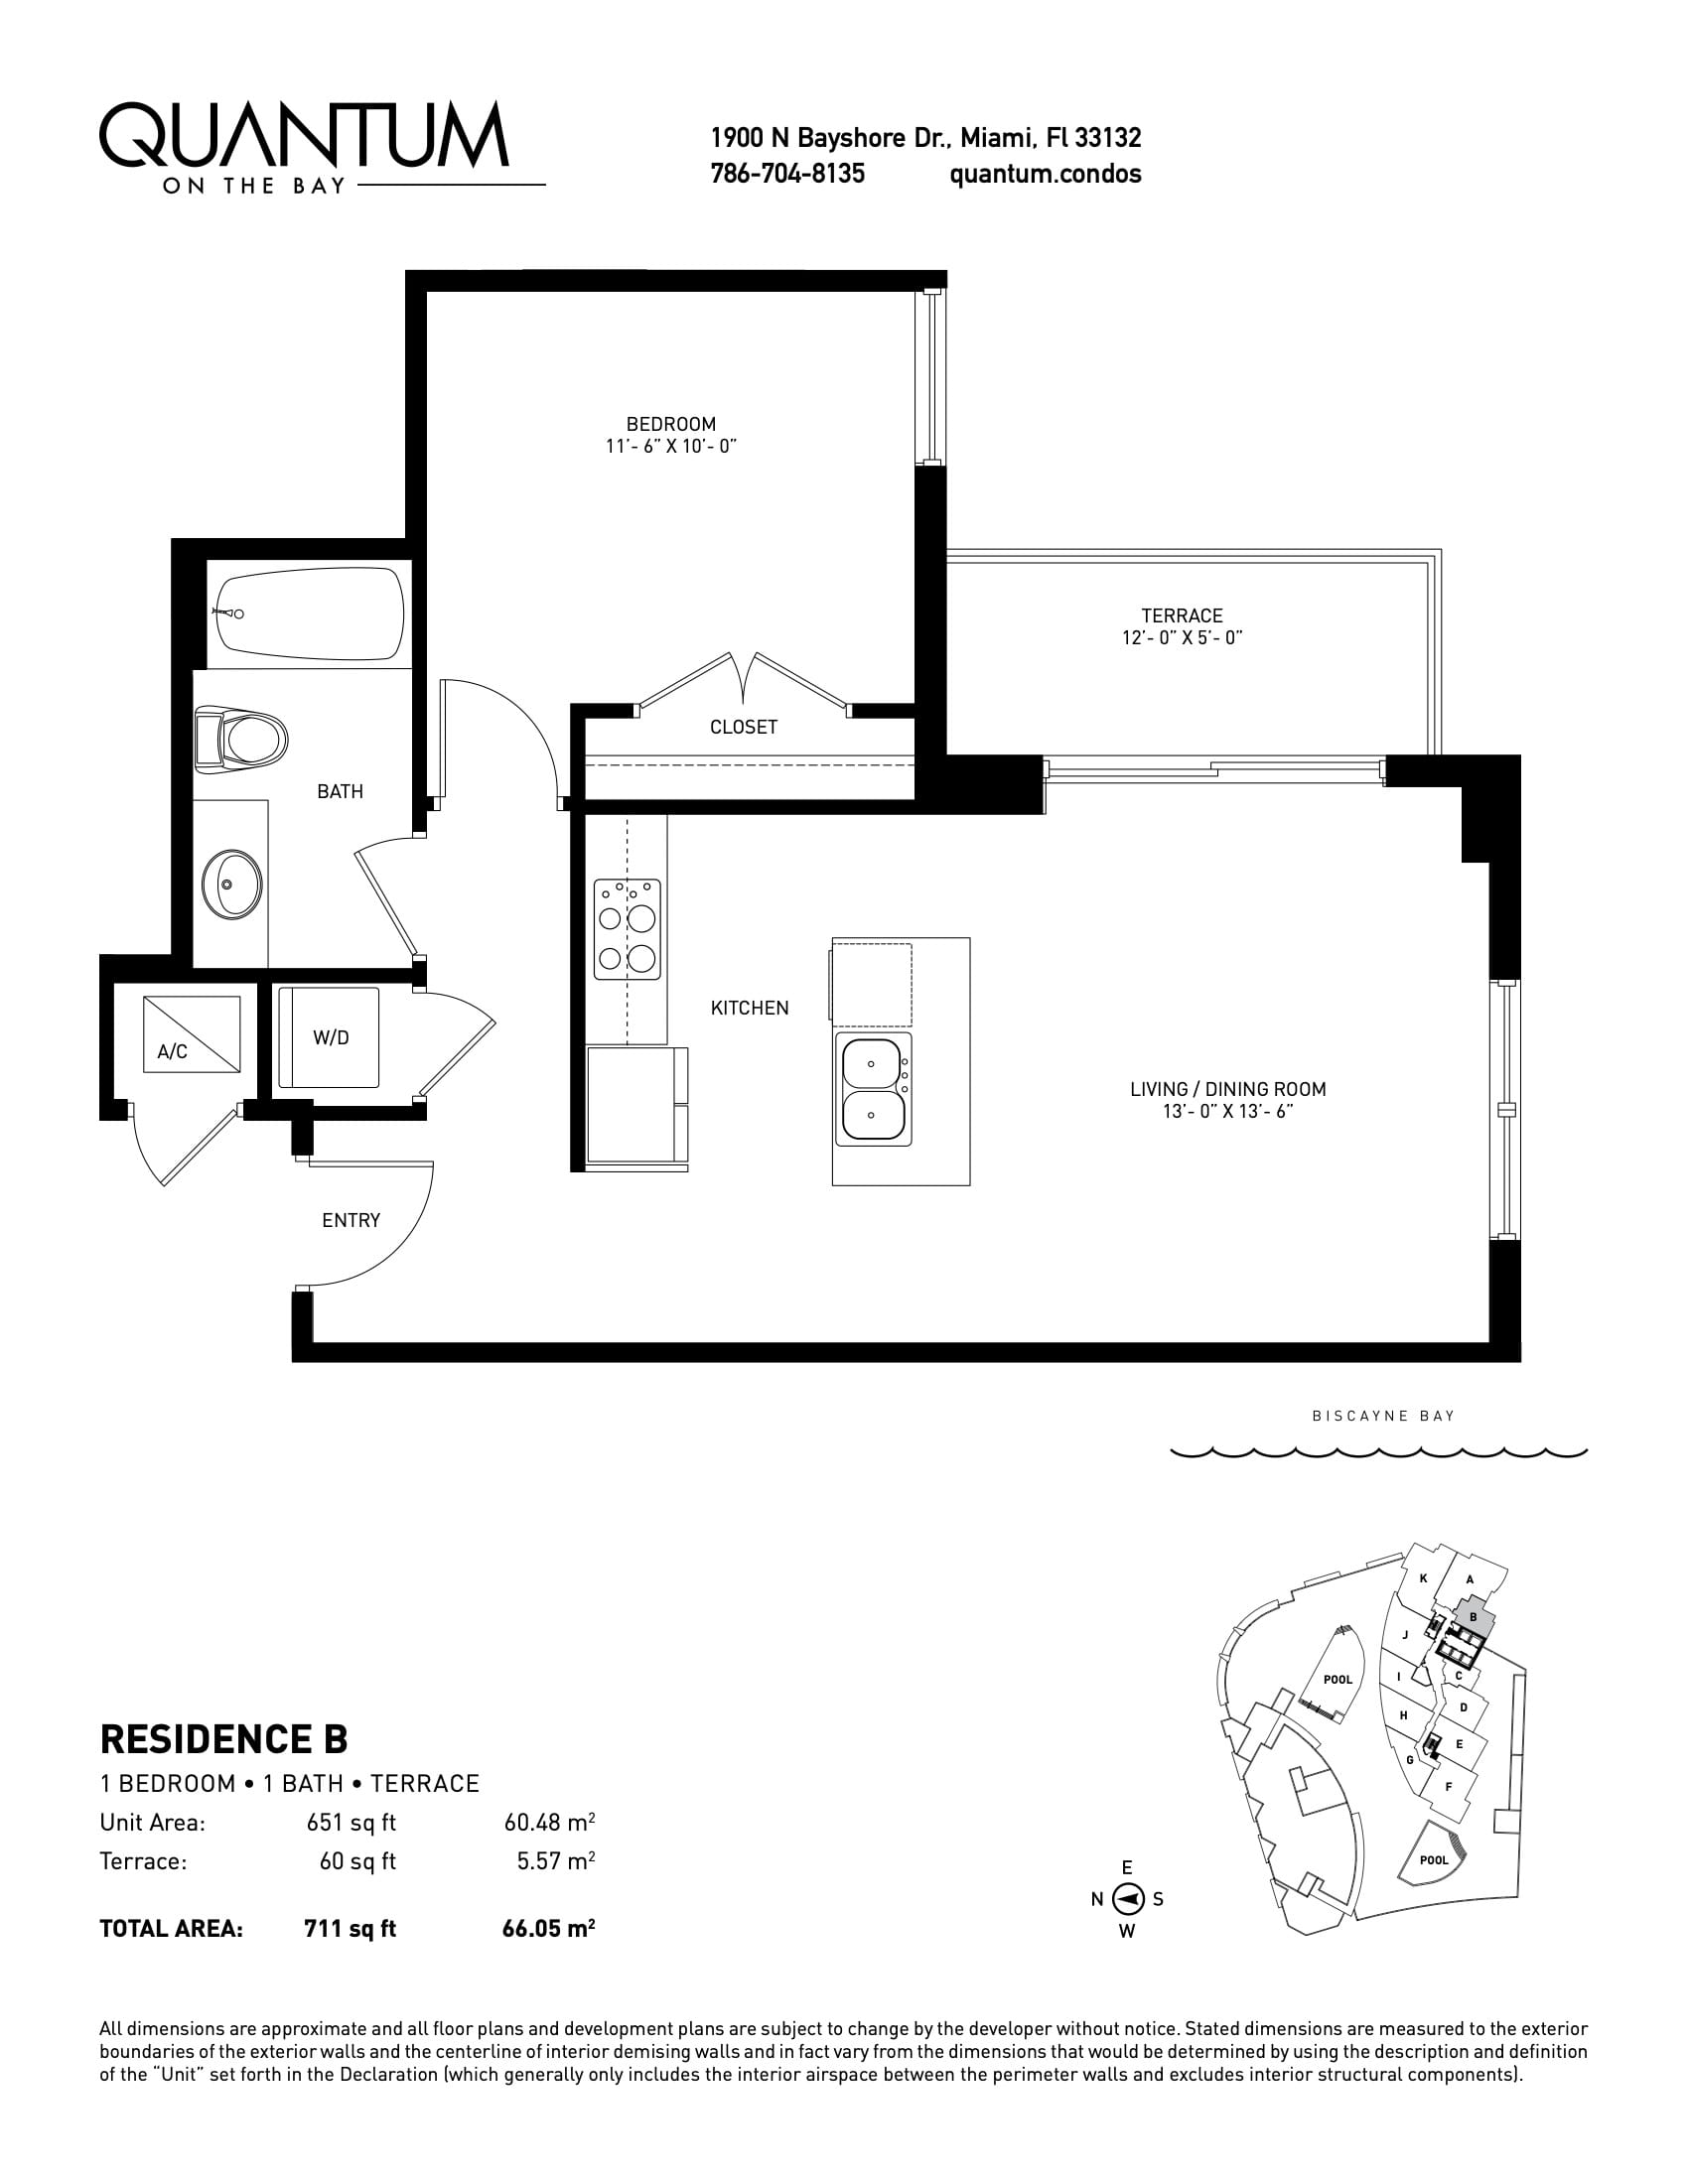 EMH3 Real Estate Quantum on the Bay Residences Floorplan